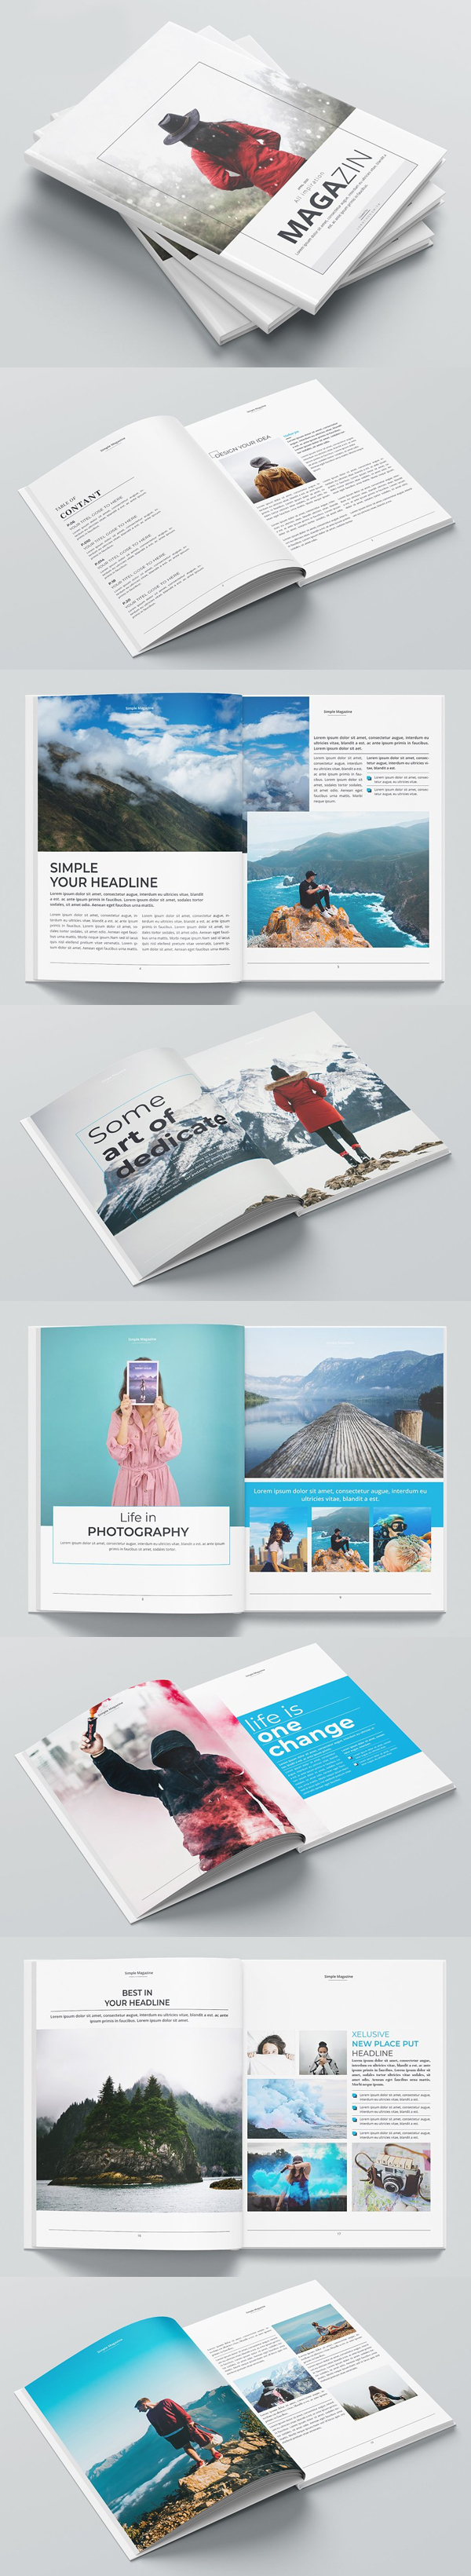 Simple Business Magazine Brochure